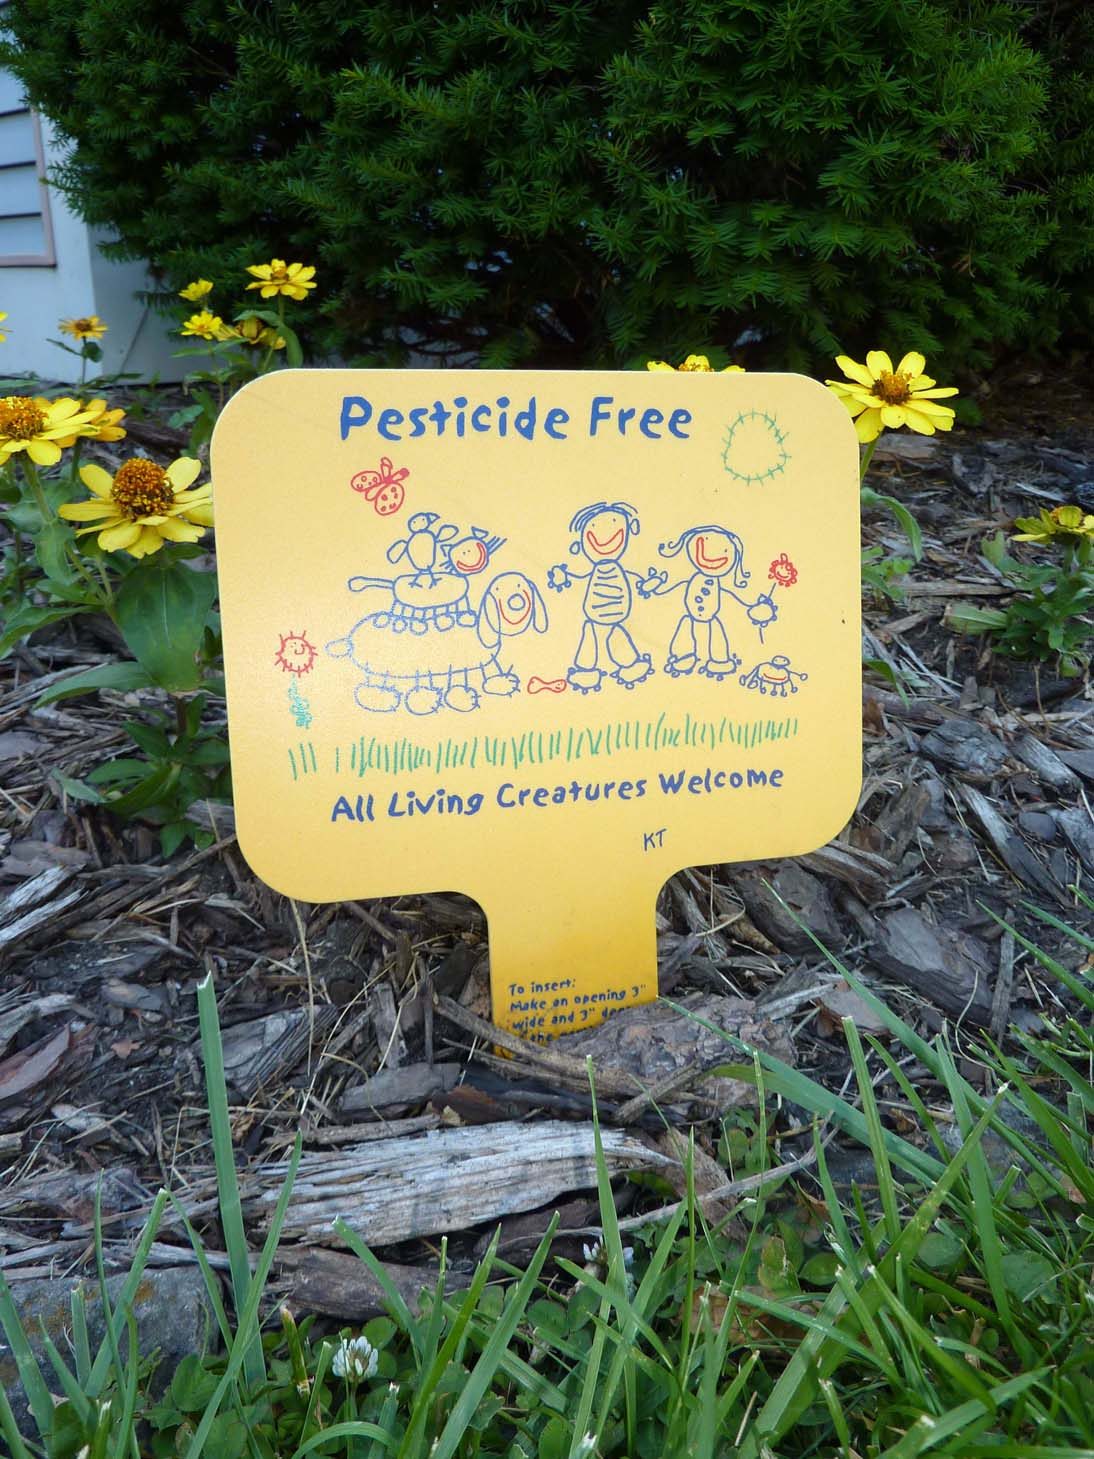 Pesticide Free sign from Oak Park. All living creatures welcome.